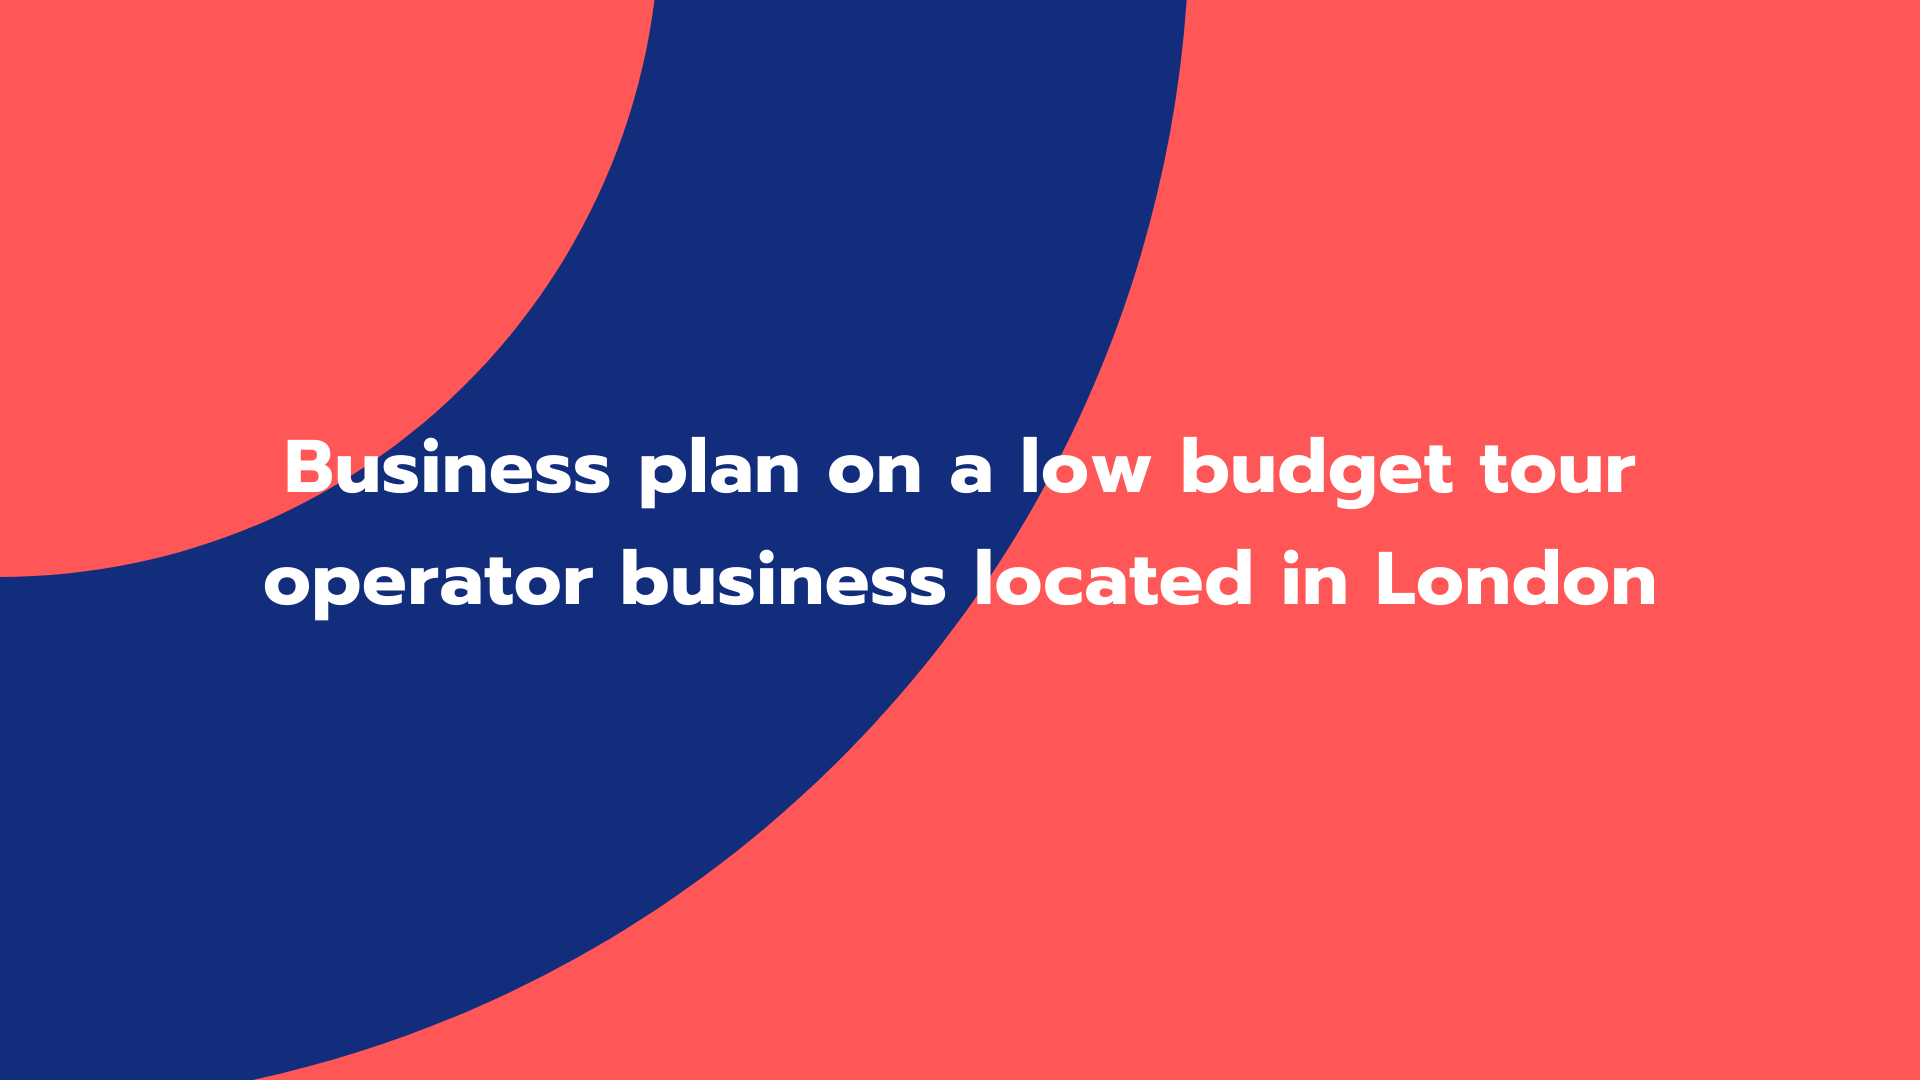 Business plan on a low budget tour operator business located in London